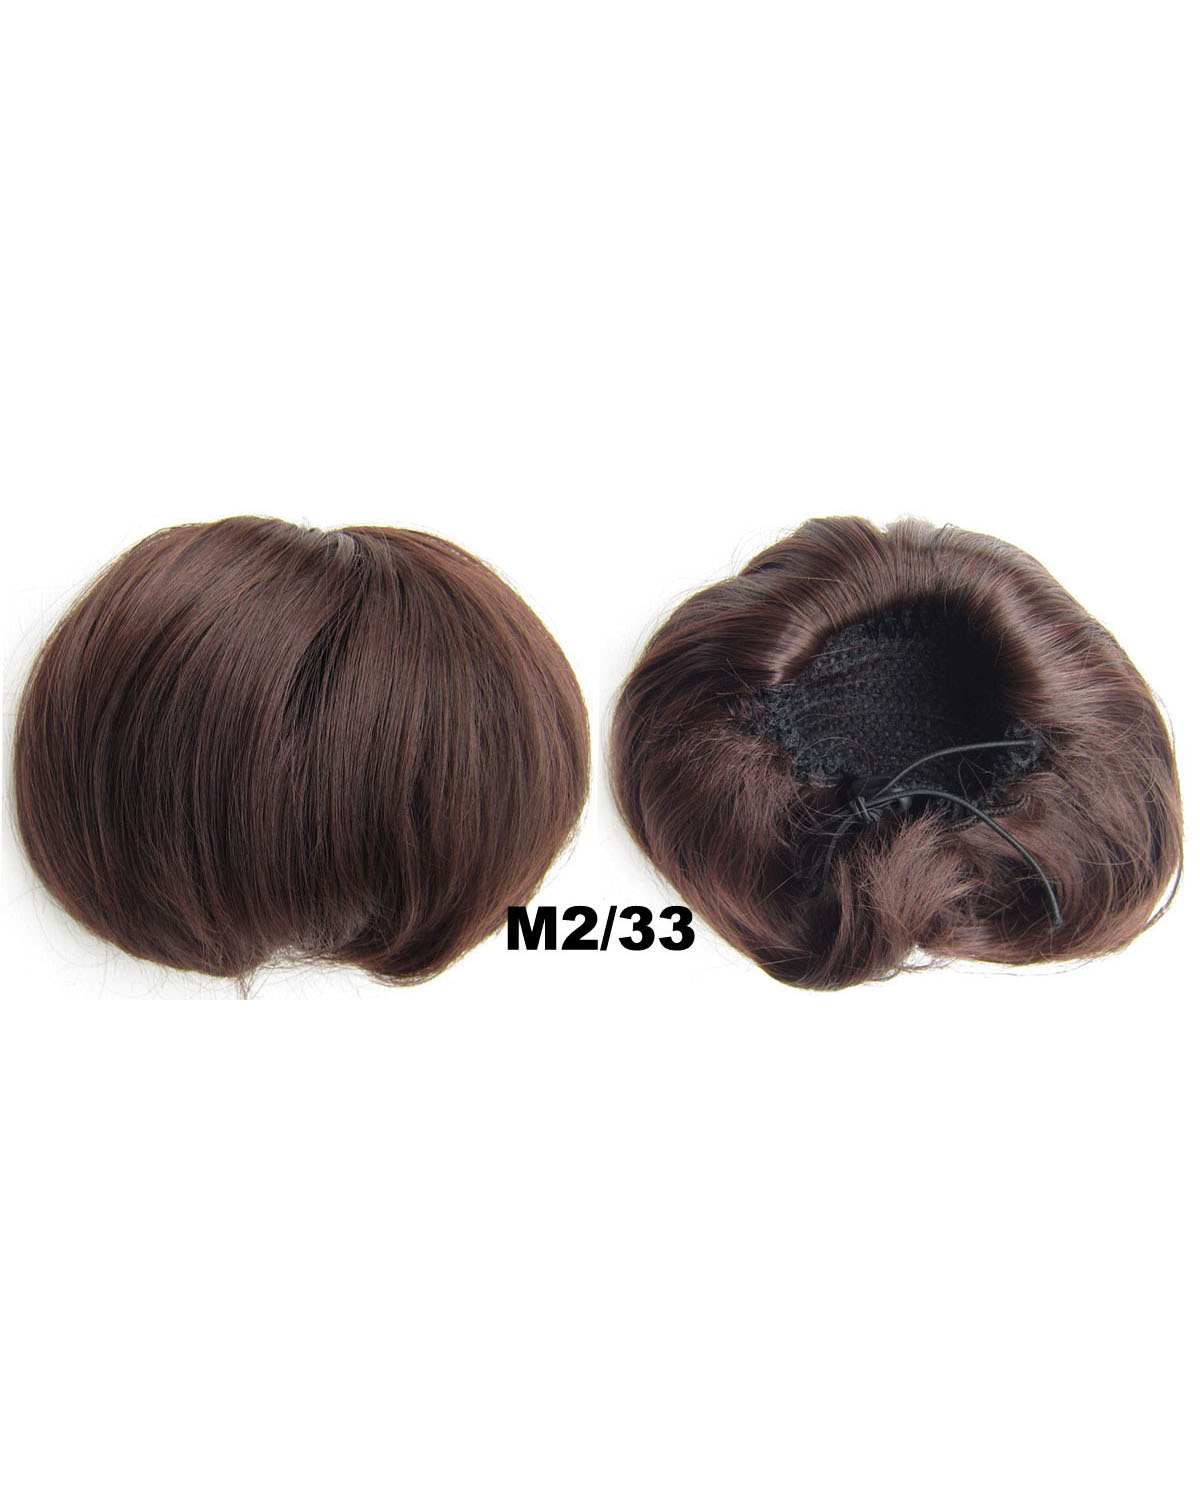 Ladies Amazing Straight Short Hair Buns Drawstring Synthetic Hair Extension Bride Scrunchies M2/33